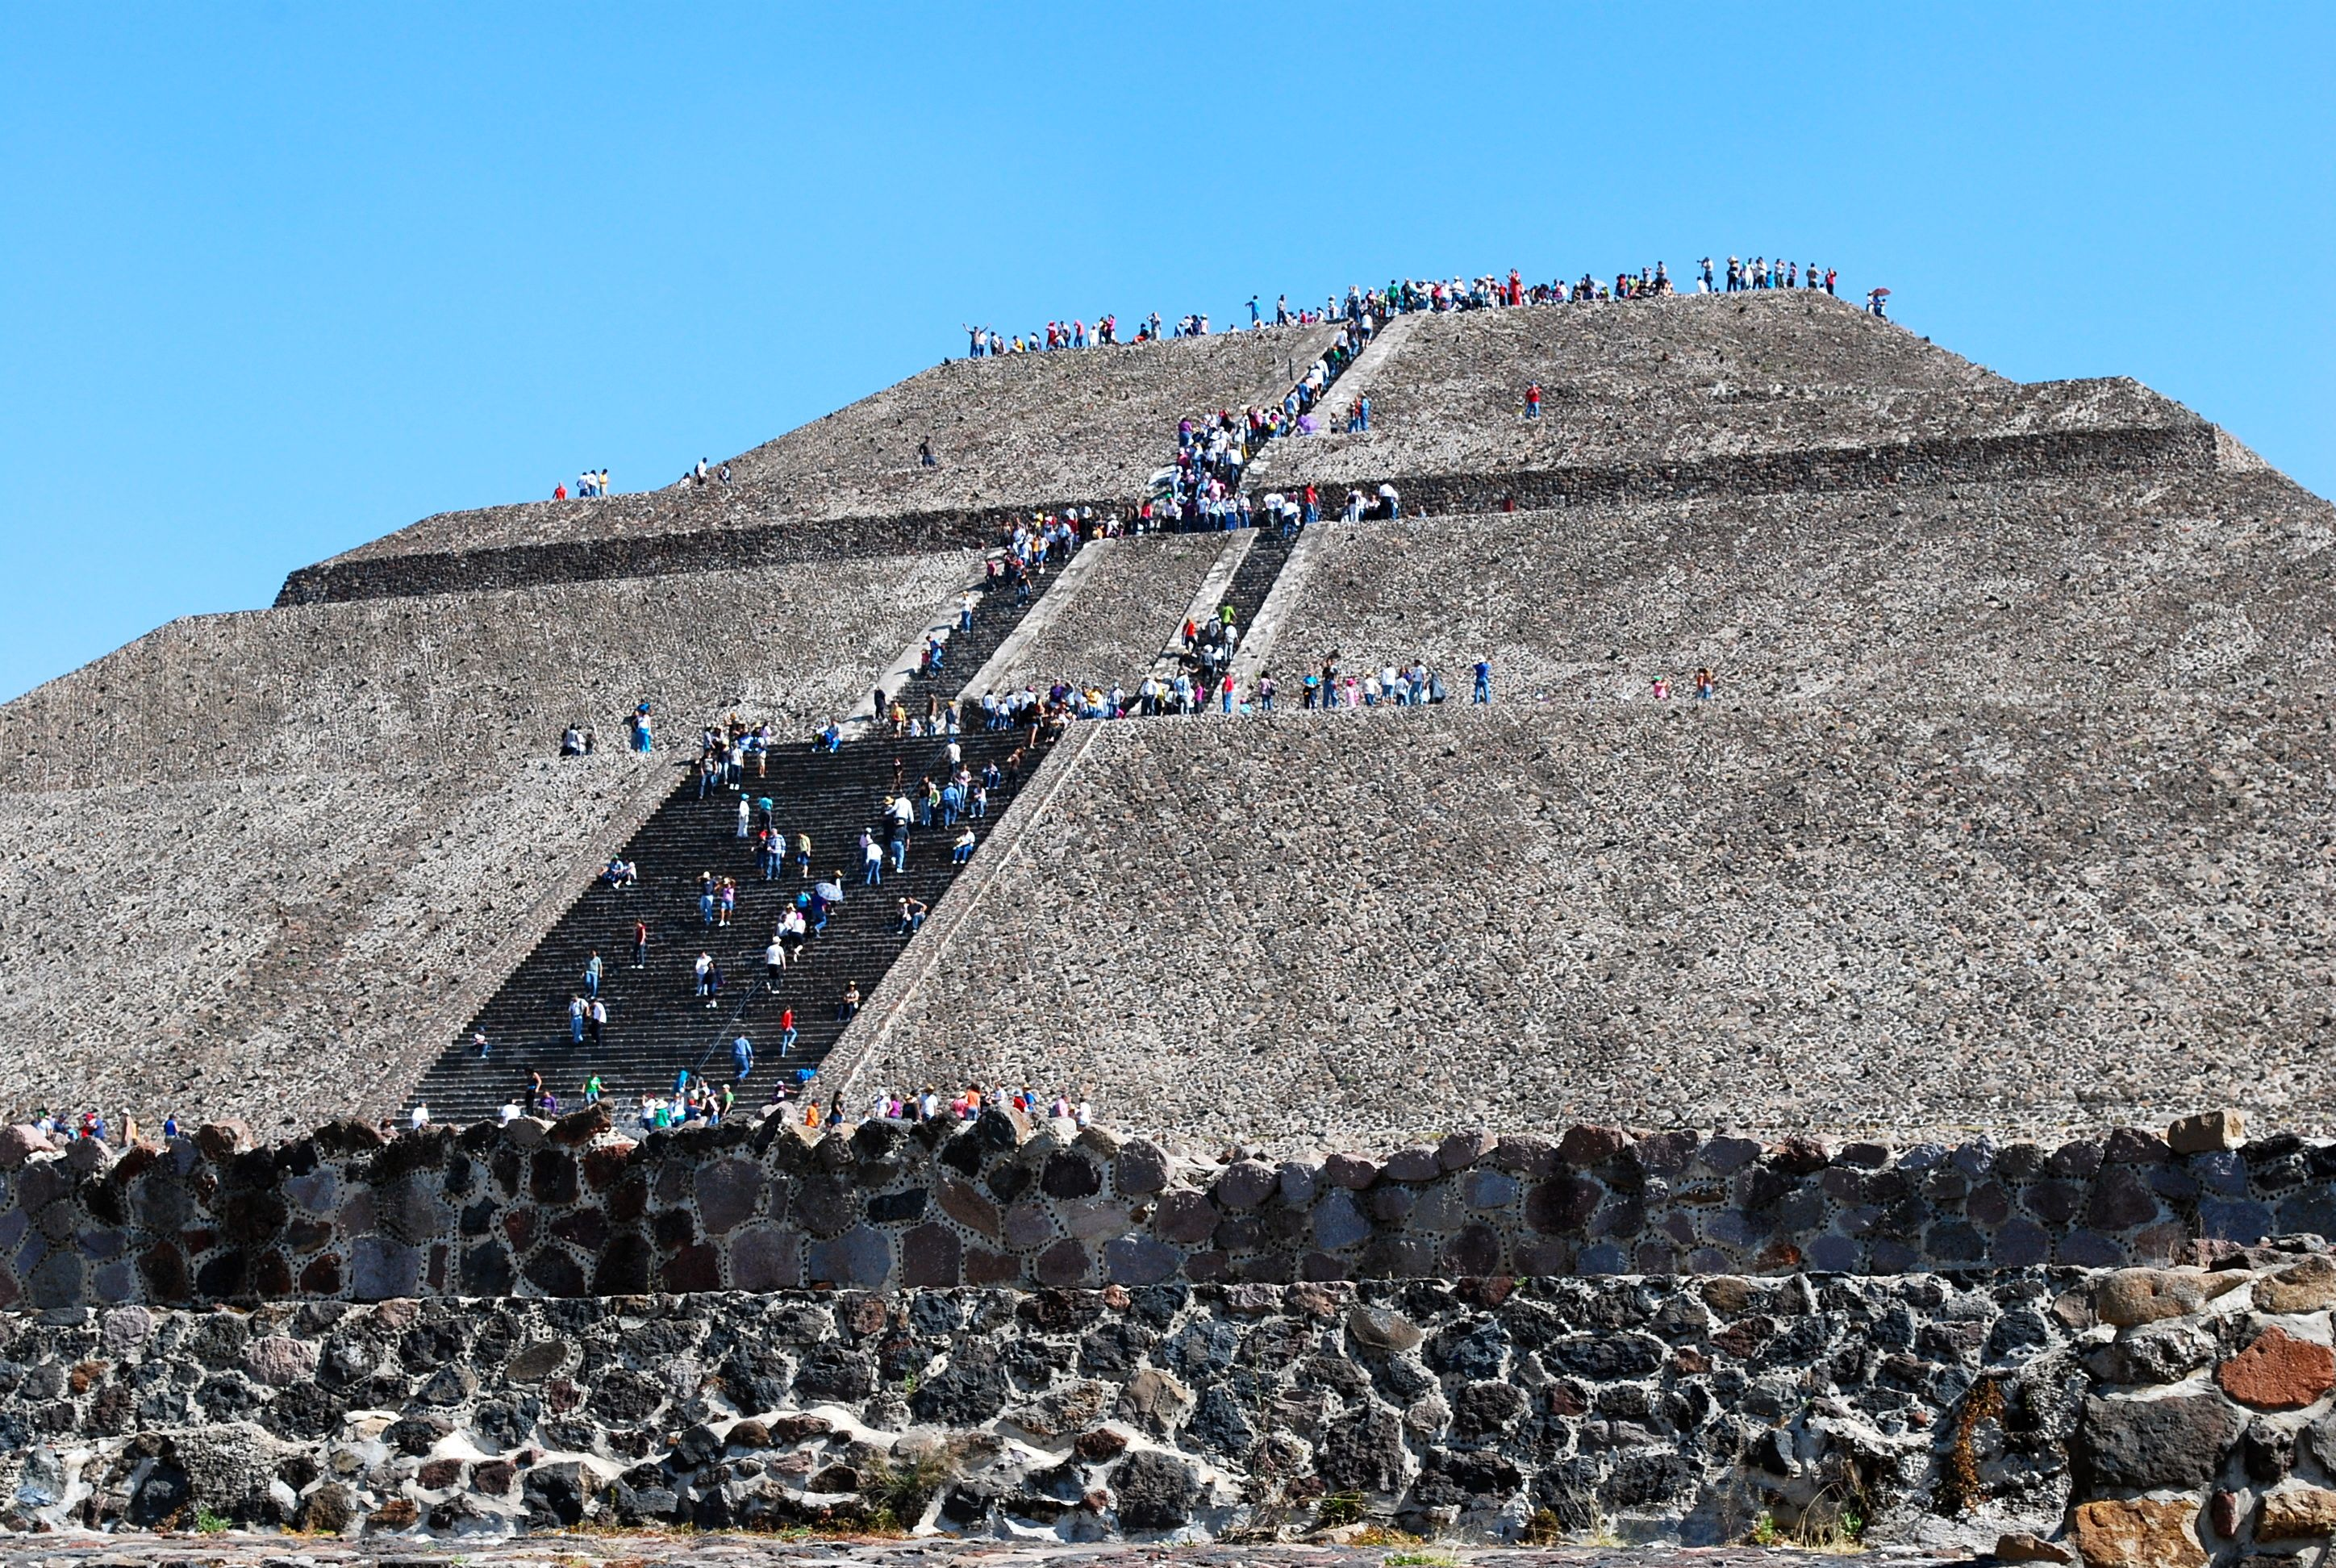 Pyramids of  Teotihuacán, Meixco city